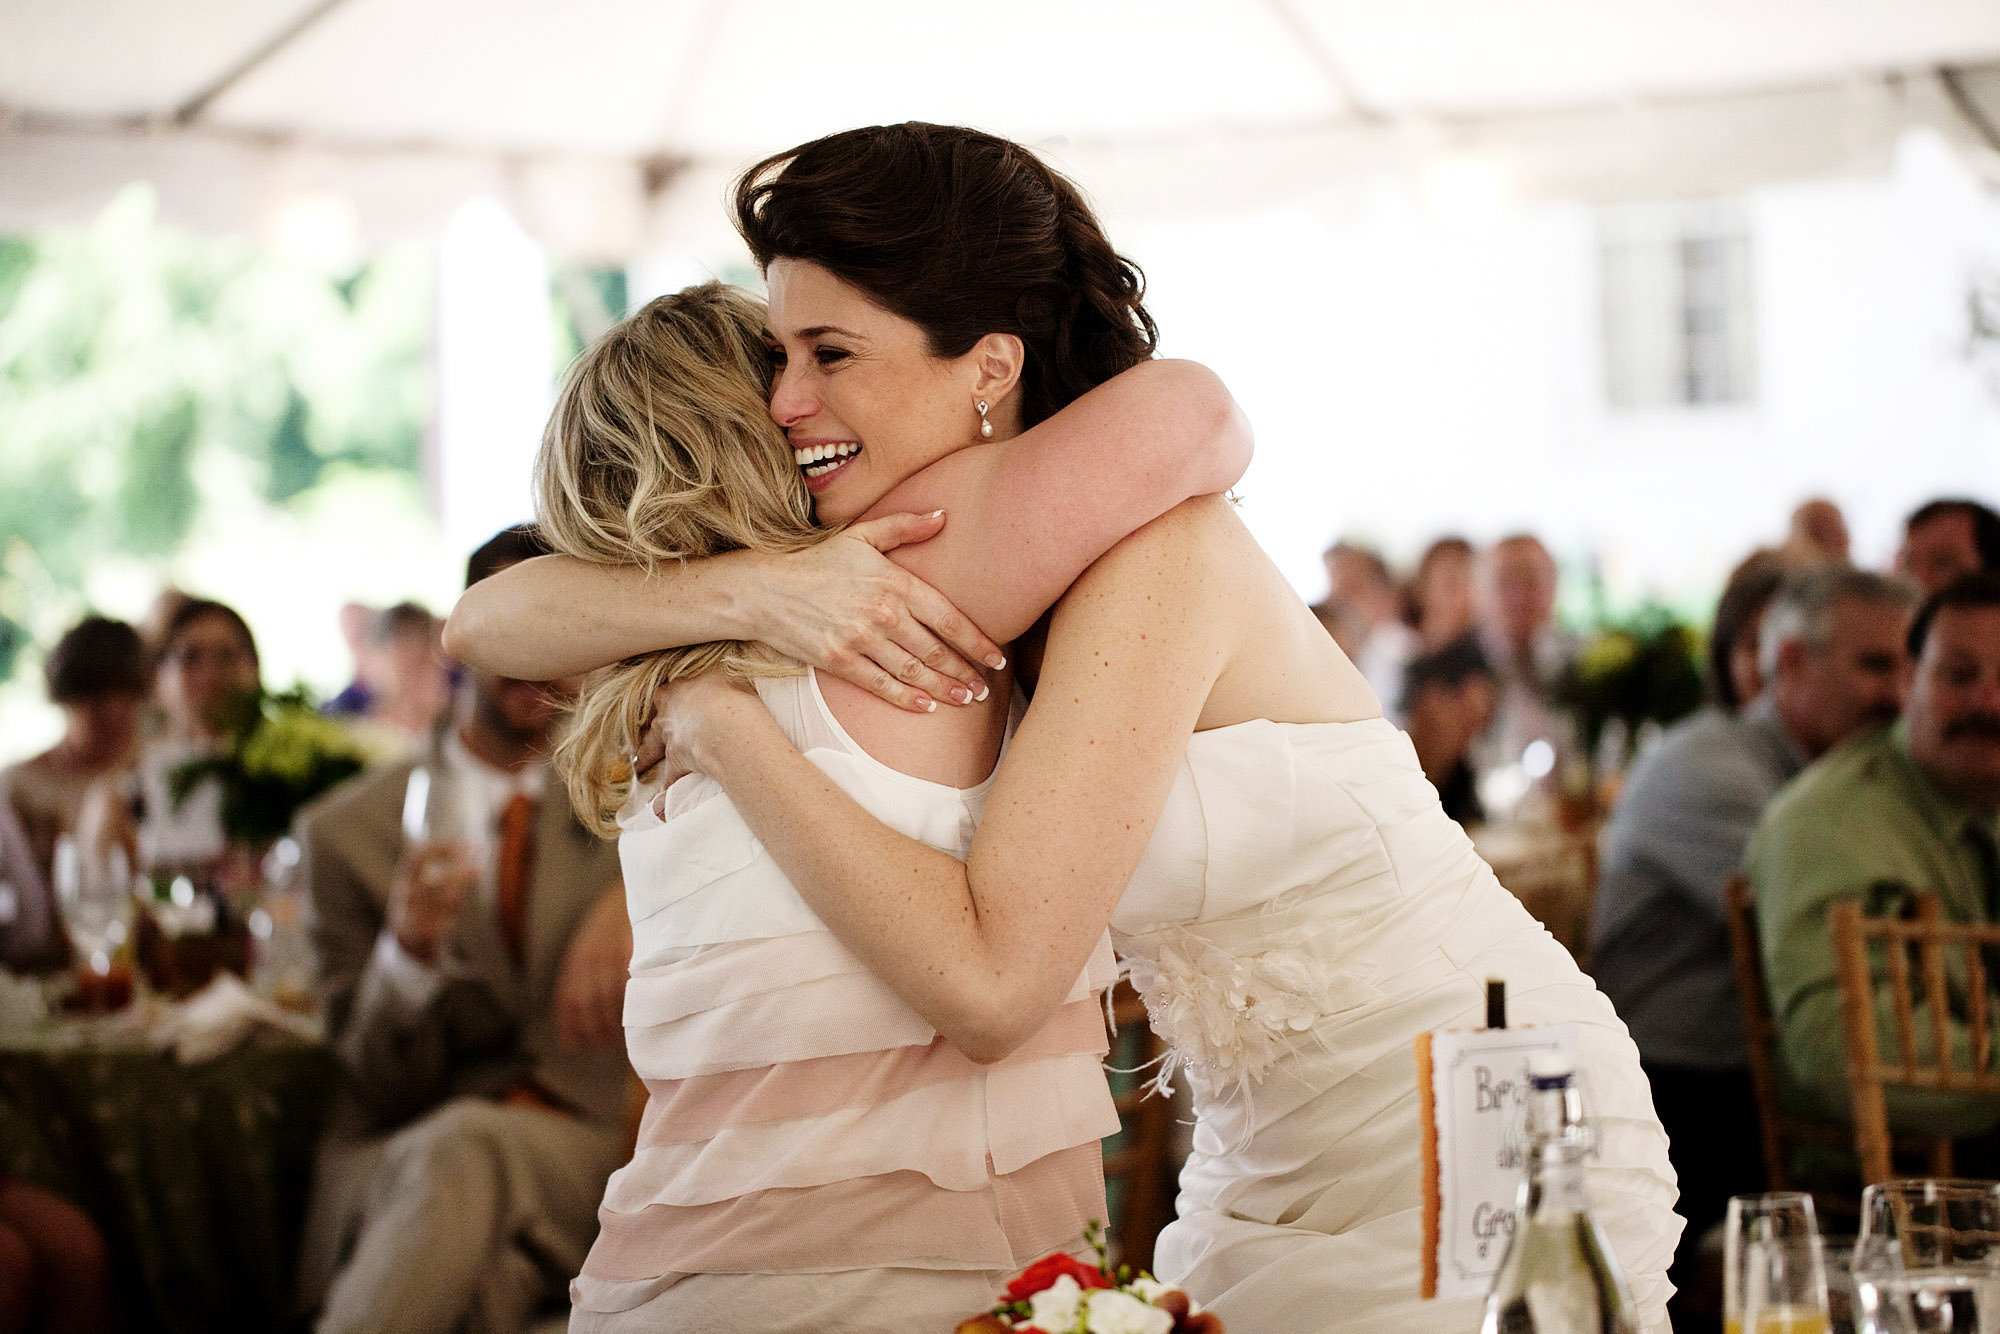 The bride hugs her maid of honor.